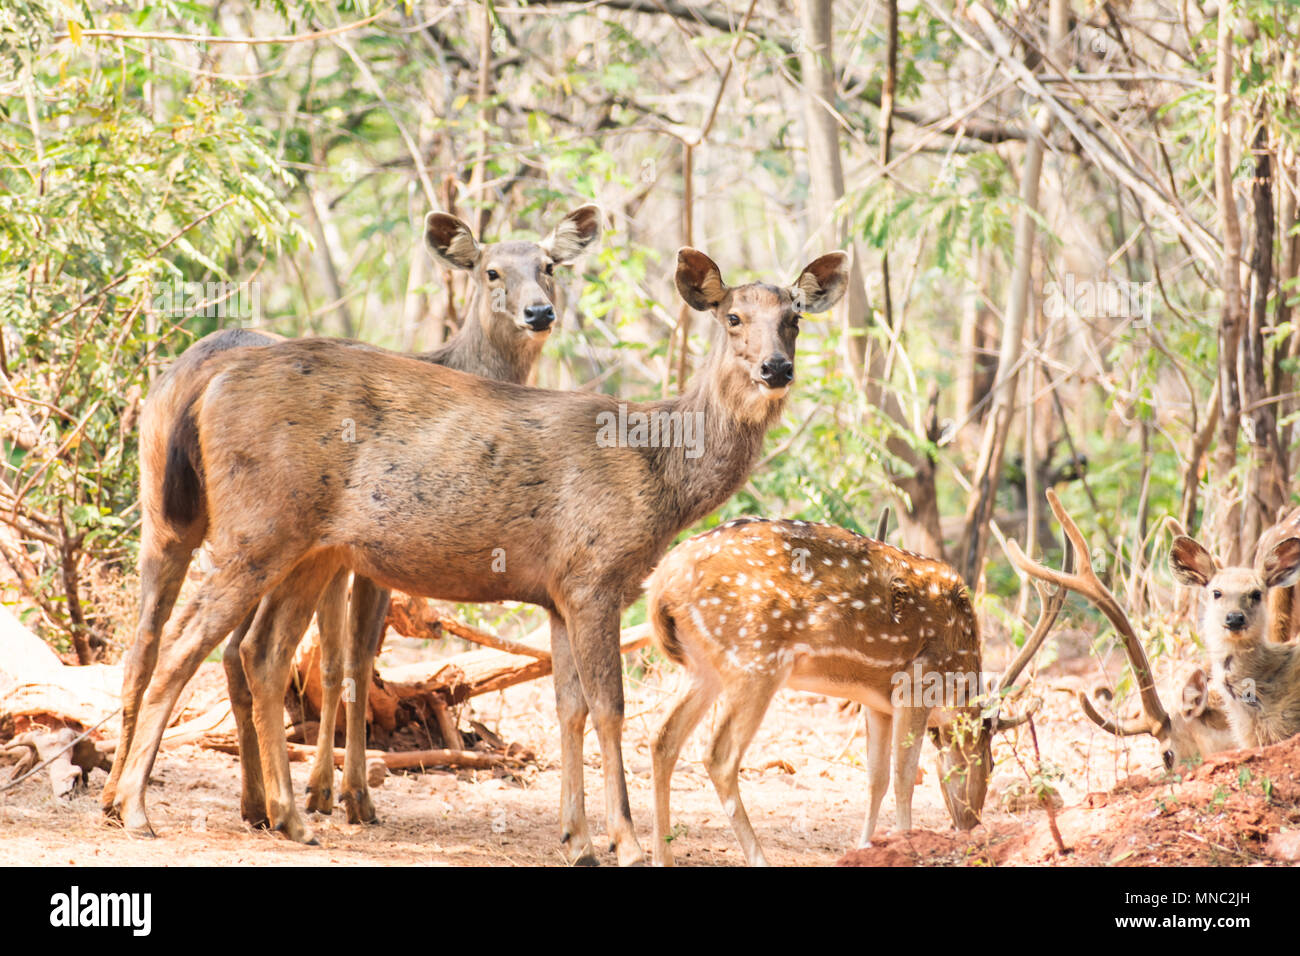 A group of sambar deer standing under a tree & looking towards to visitor. Stock Photo